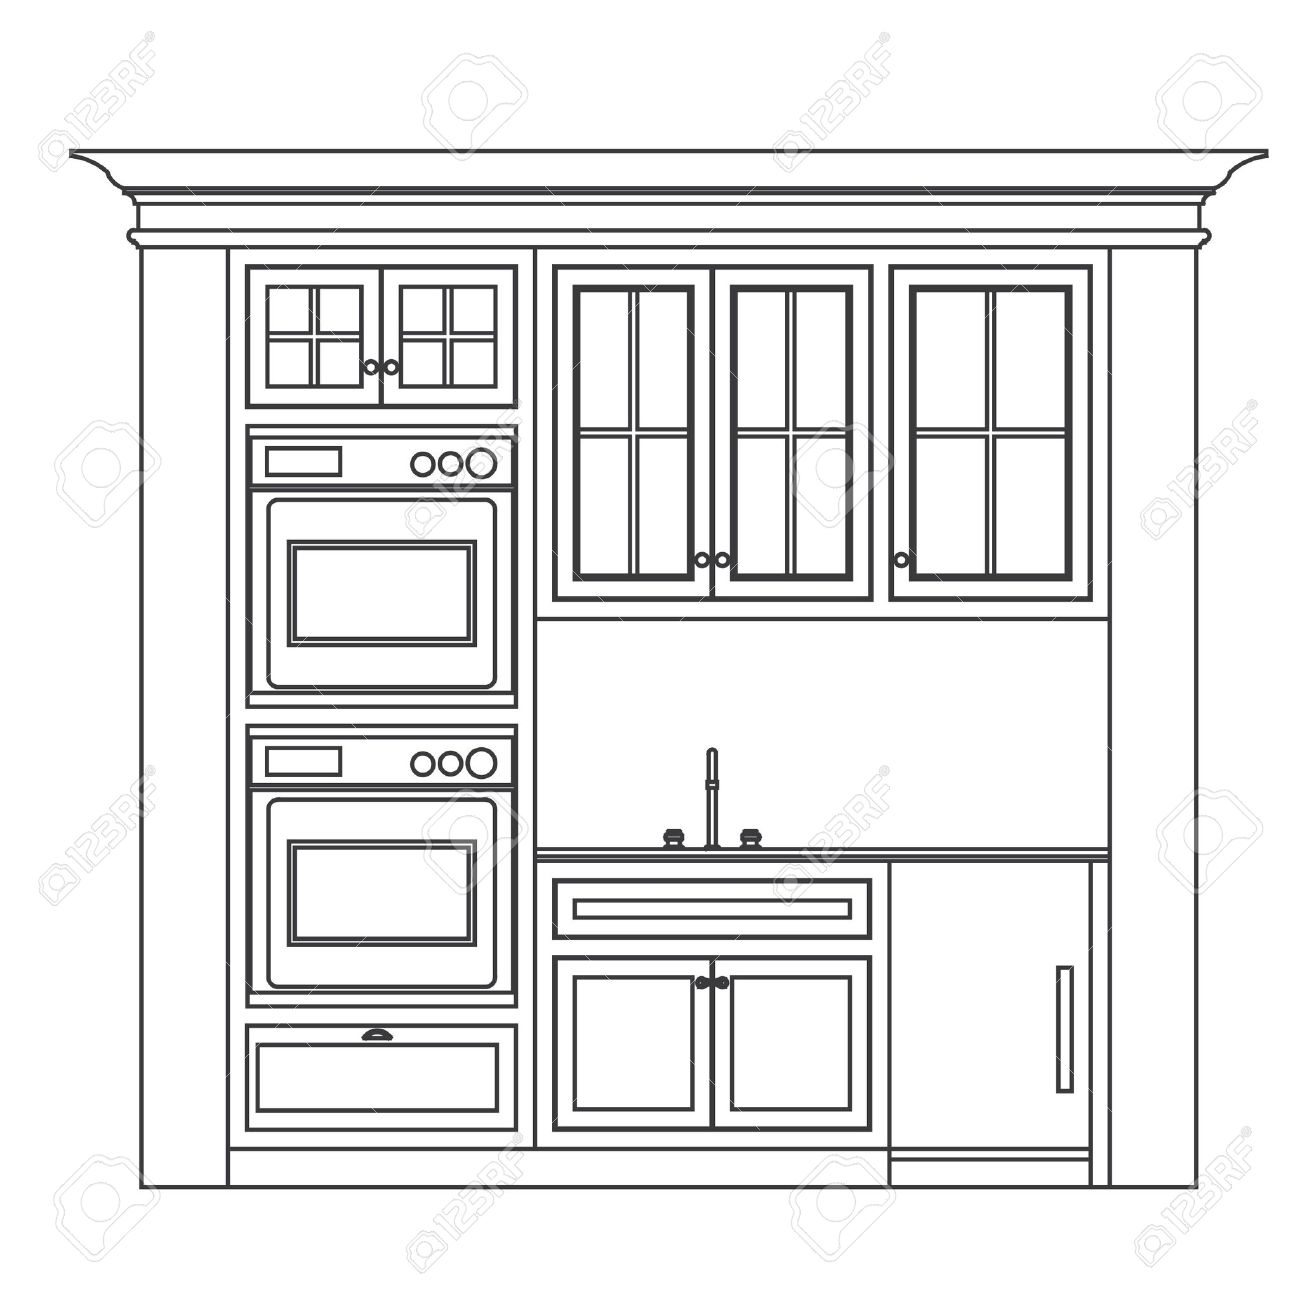 dessiner cuisine en ligne sofag. Black Bedroom Furniture Sets. Home Design Ideas